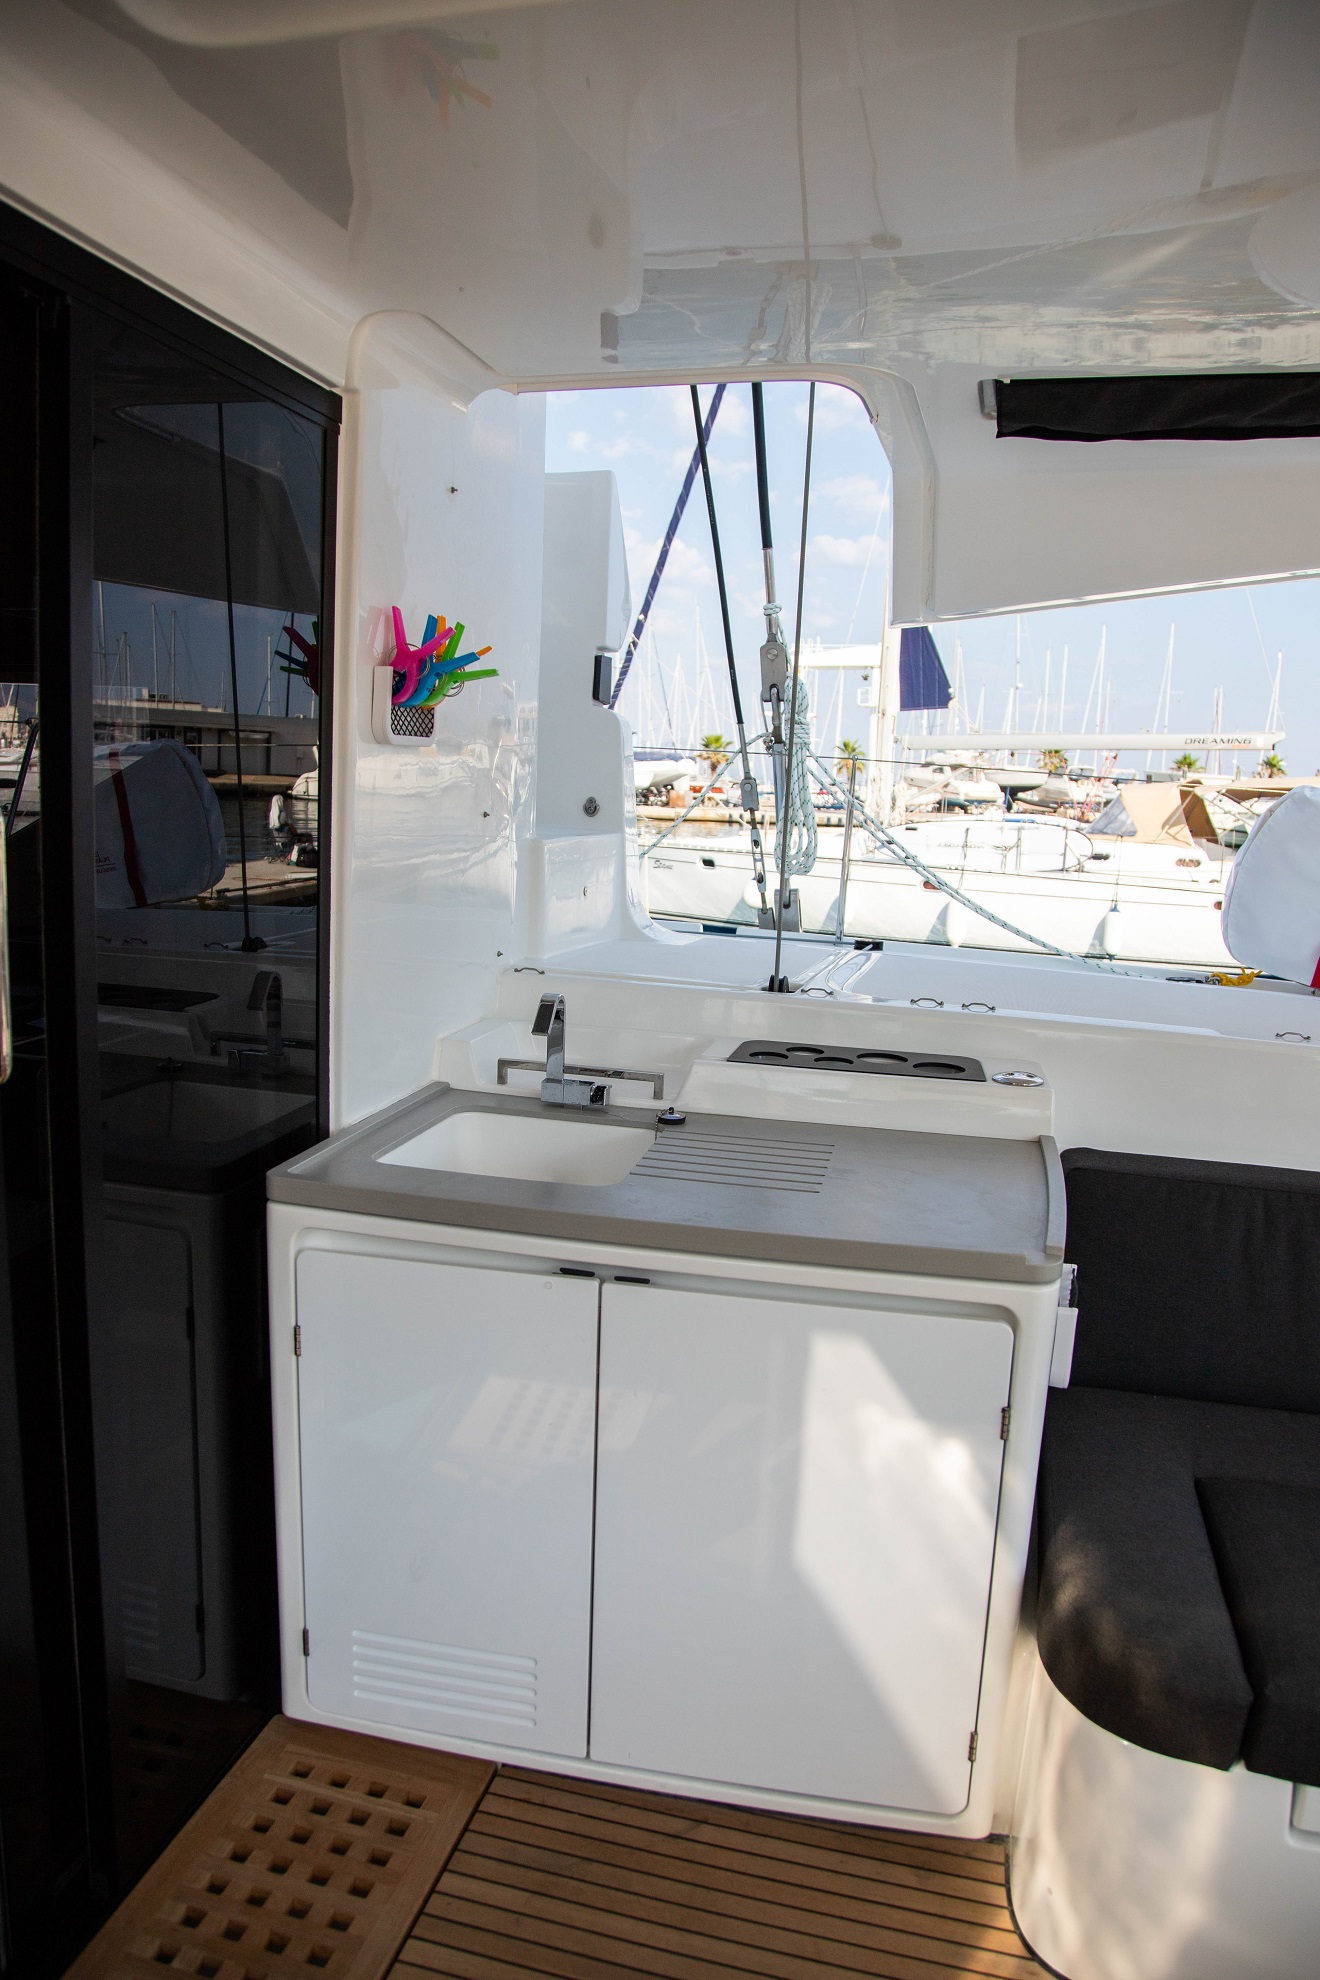 Lagoon 50 LUX elegance (2019) equipped with aircon (TWIN JOY)  - 10